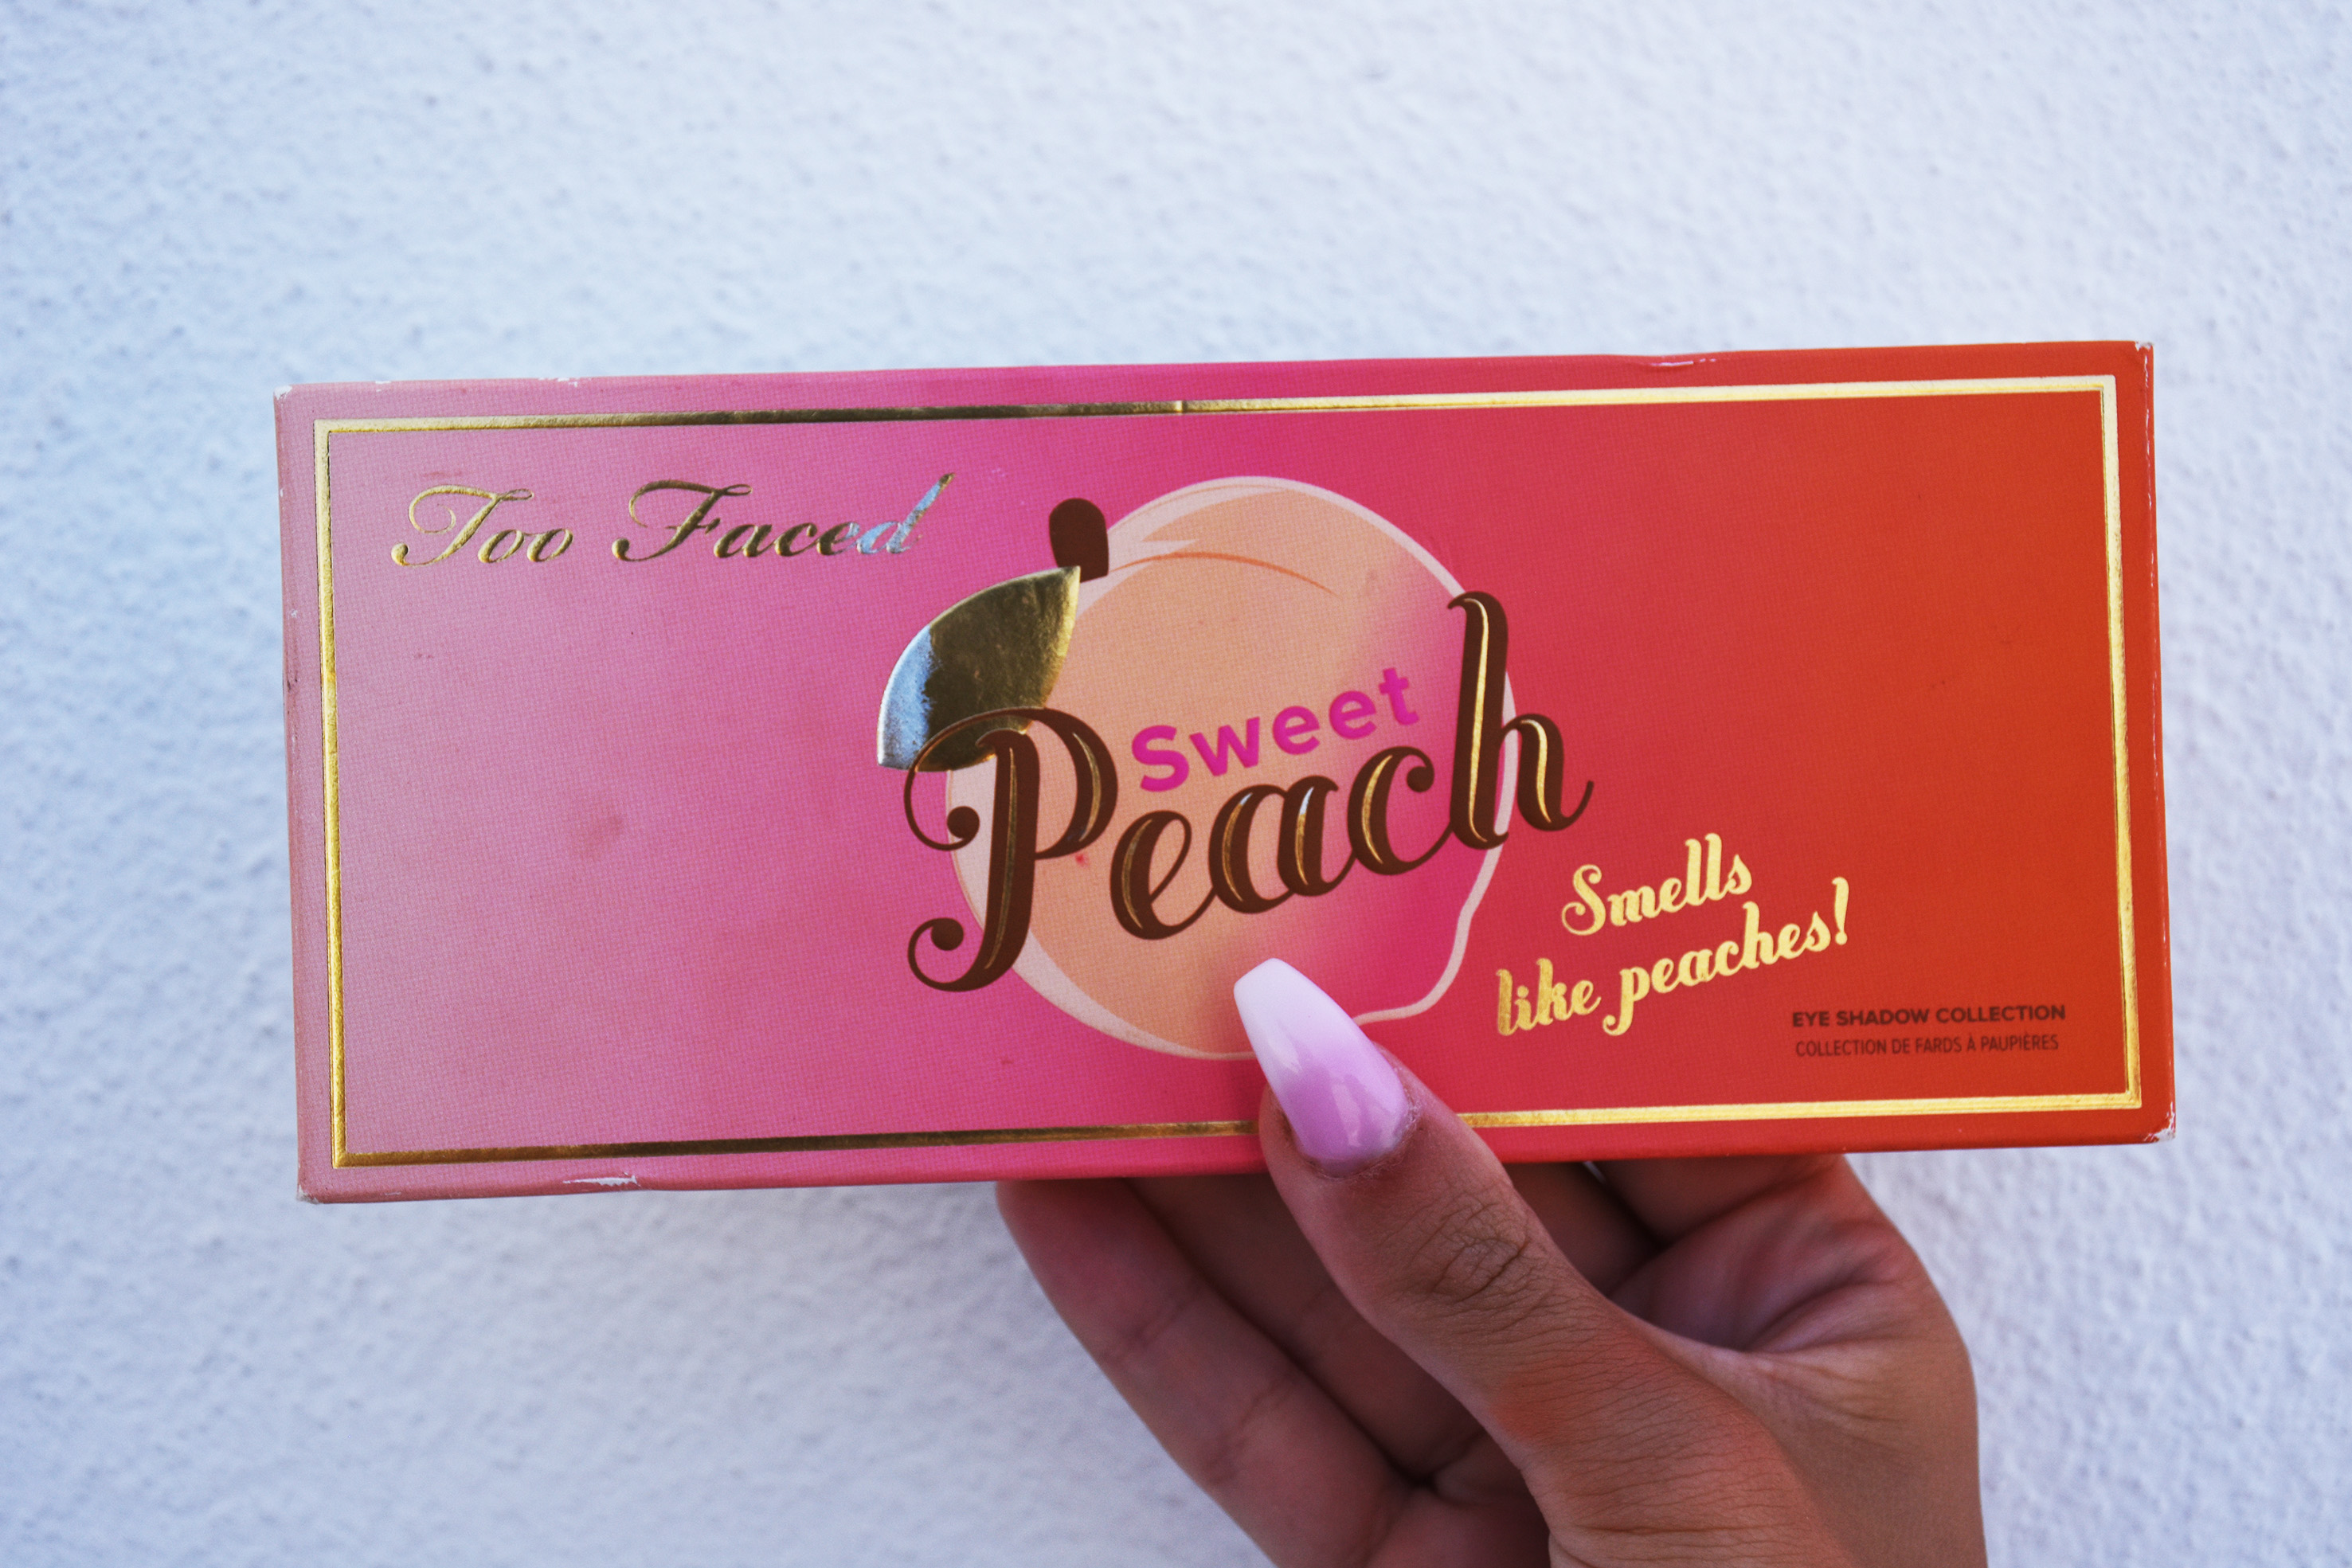 a full review of too faced peachy palette